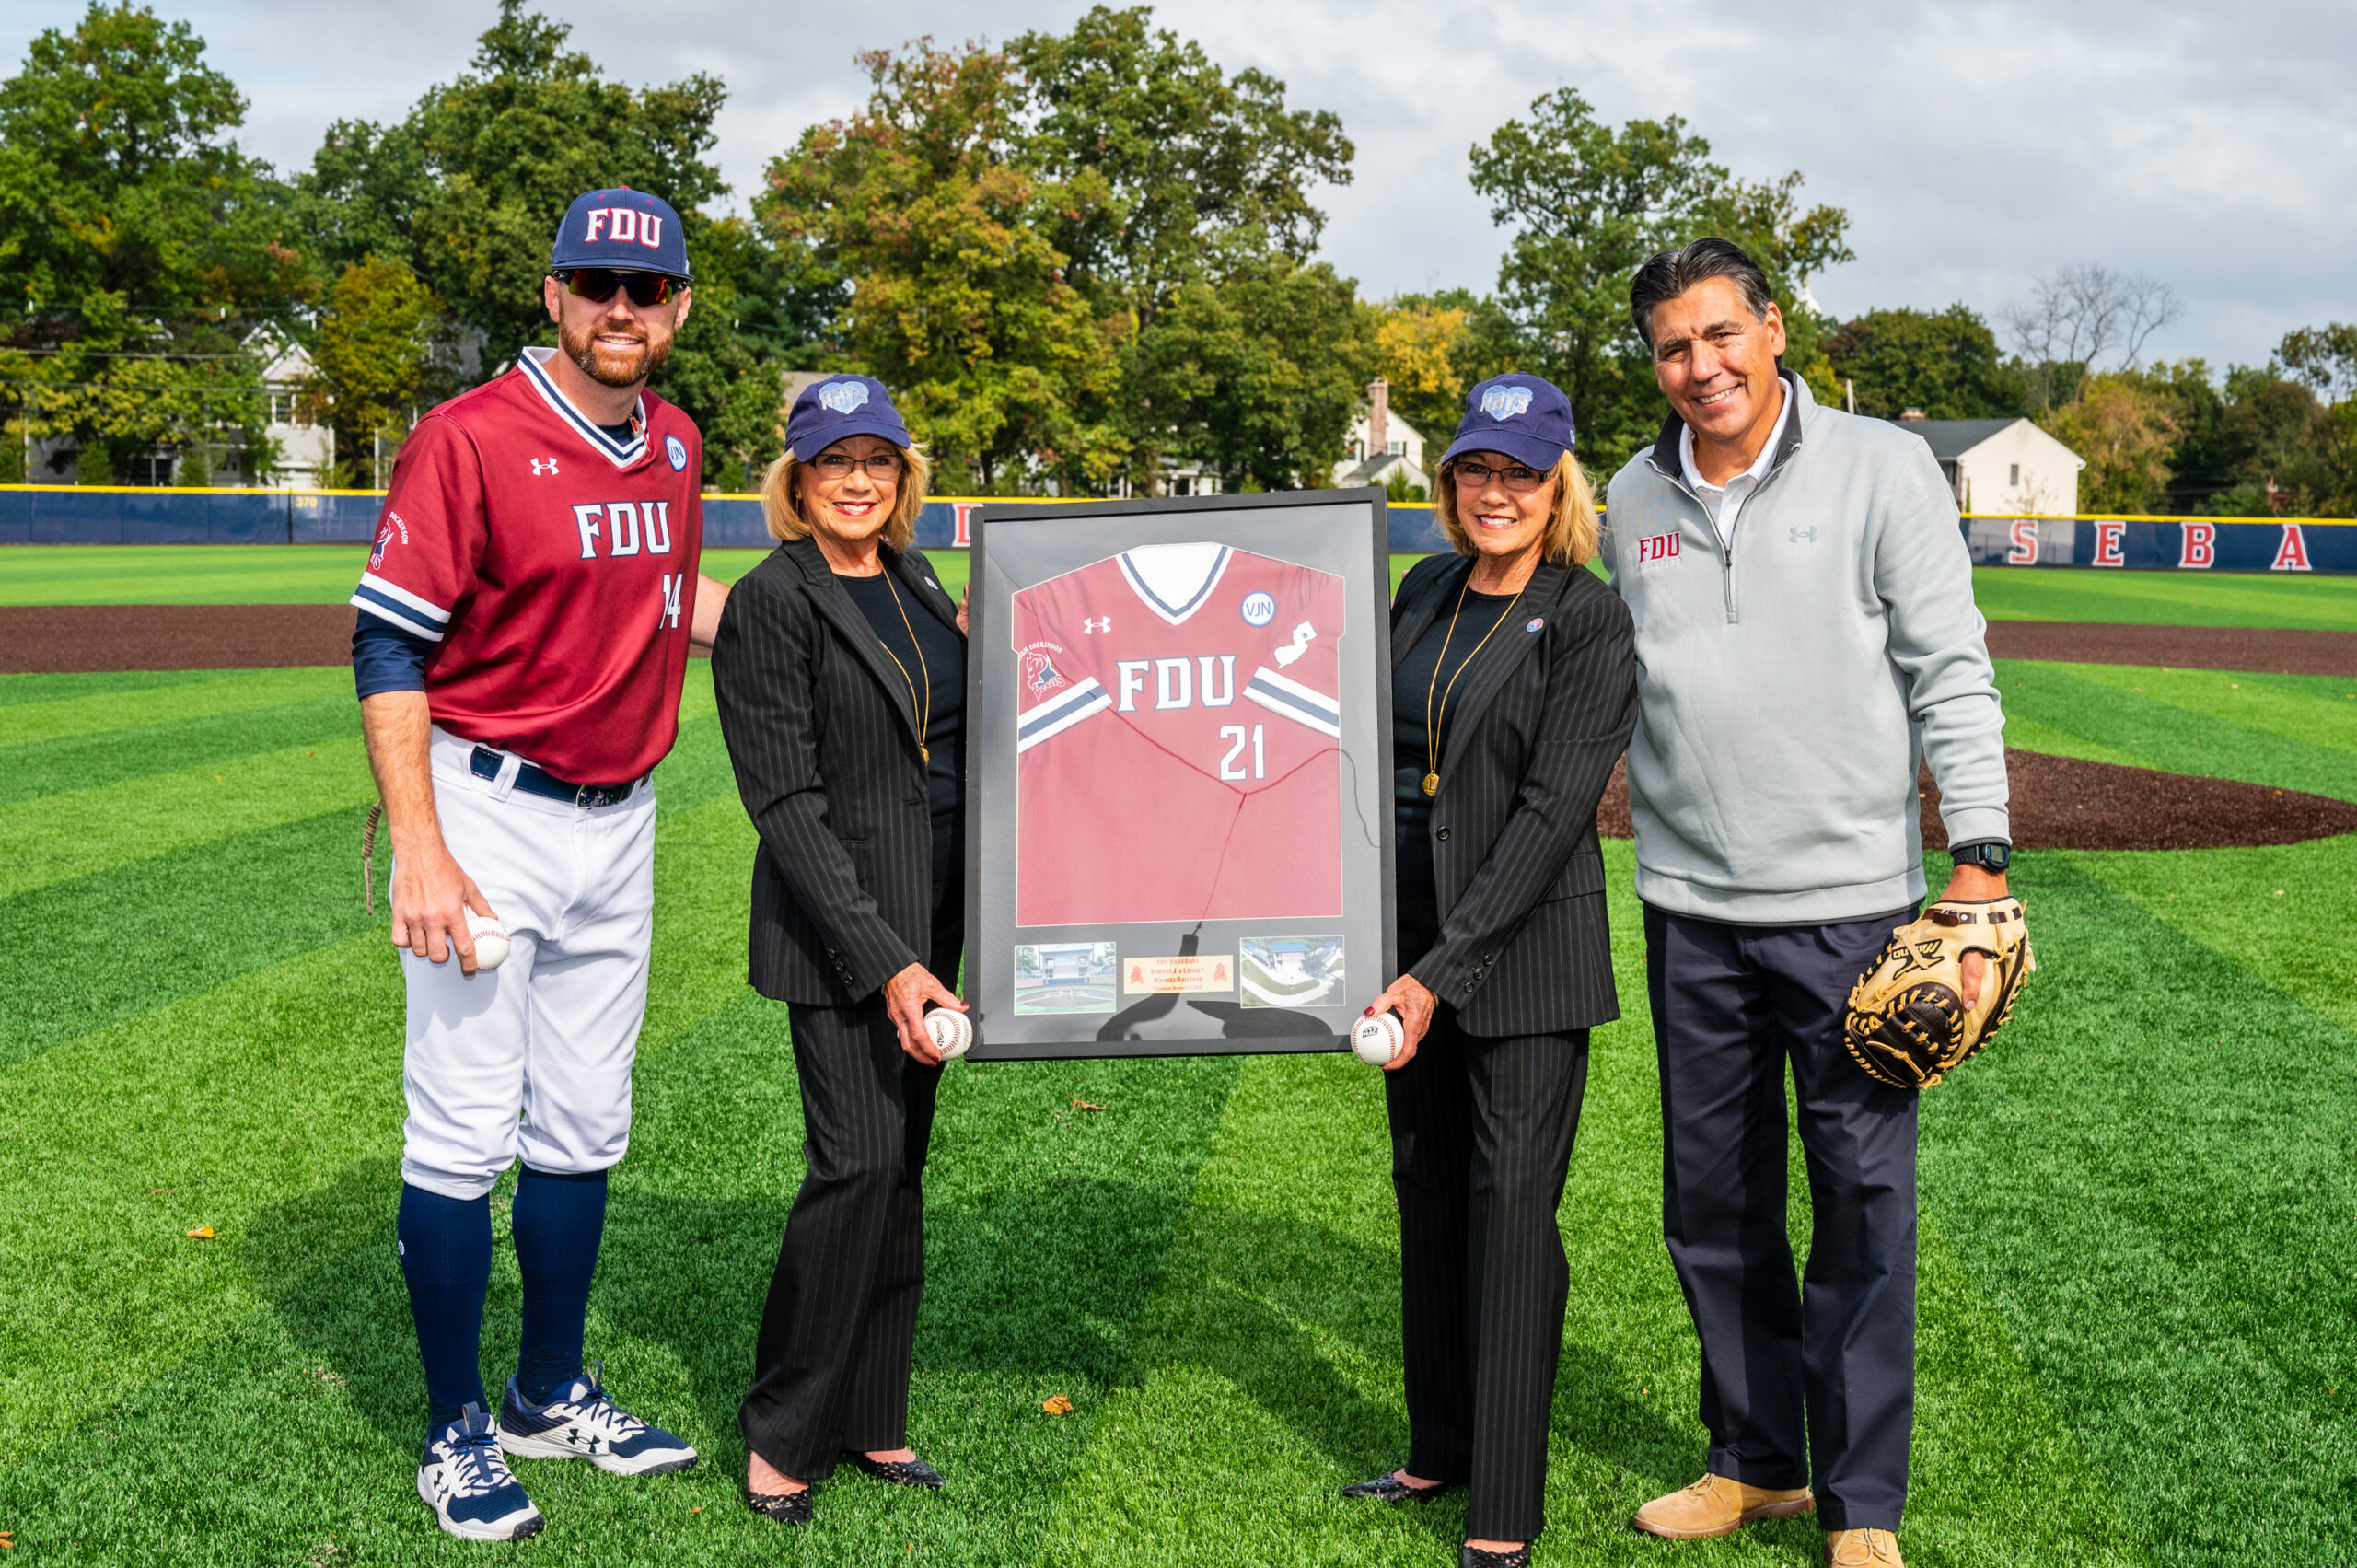 Two men and two women pose for a photo as the women hold a framed FDU baseball jersey.